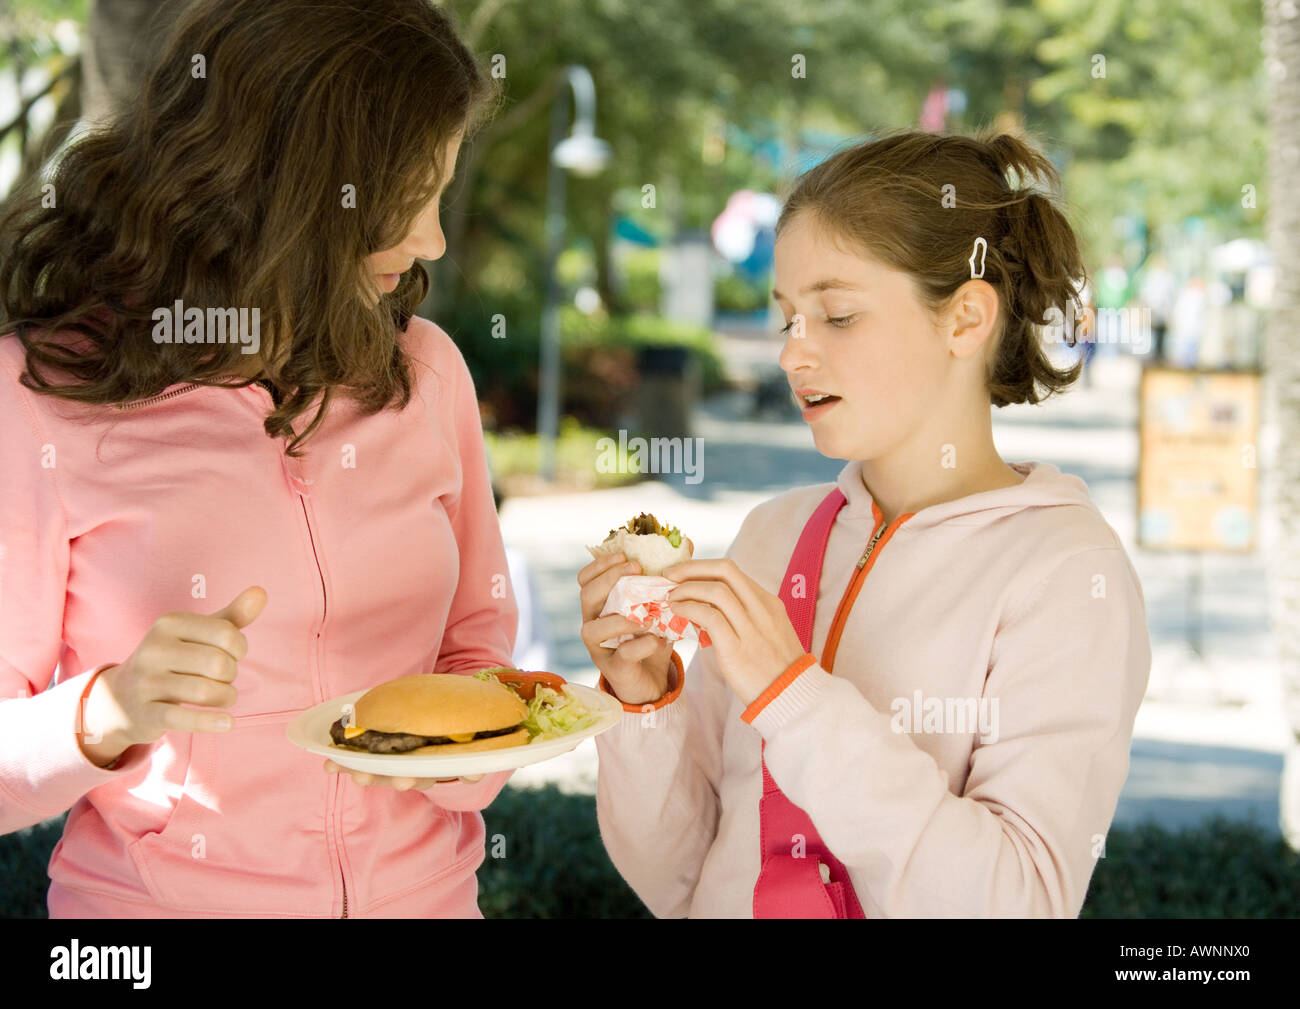 Two preteen girls eating junk food - Stock Image